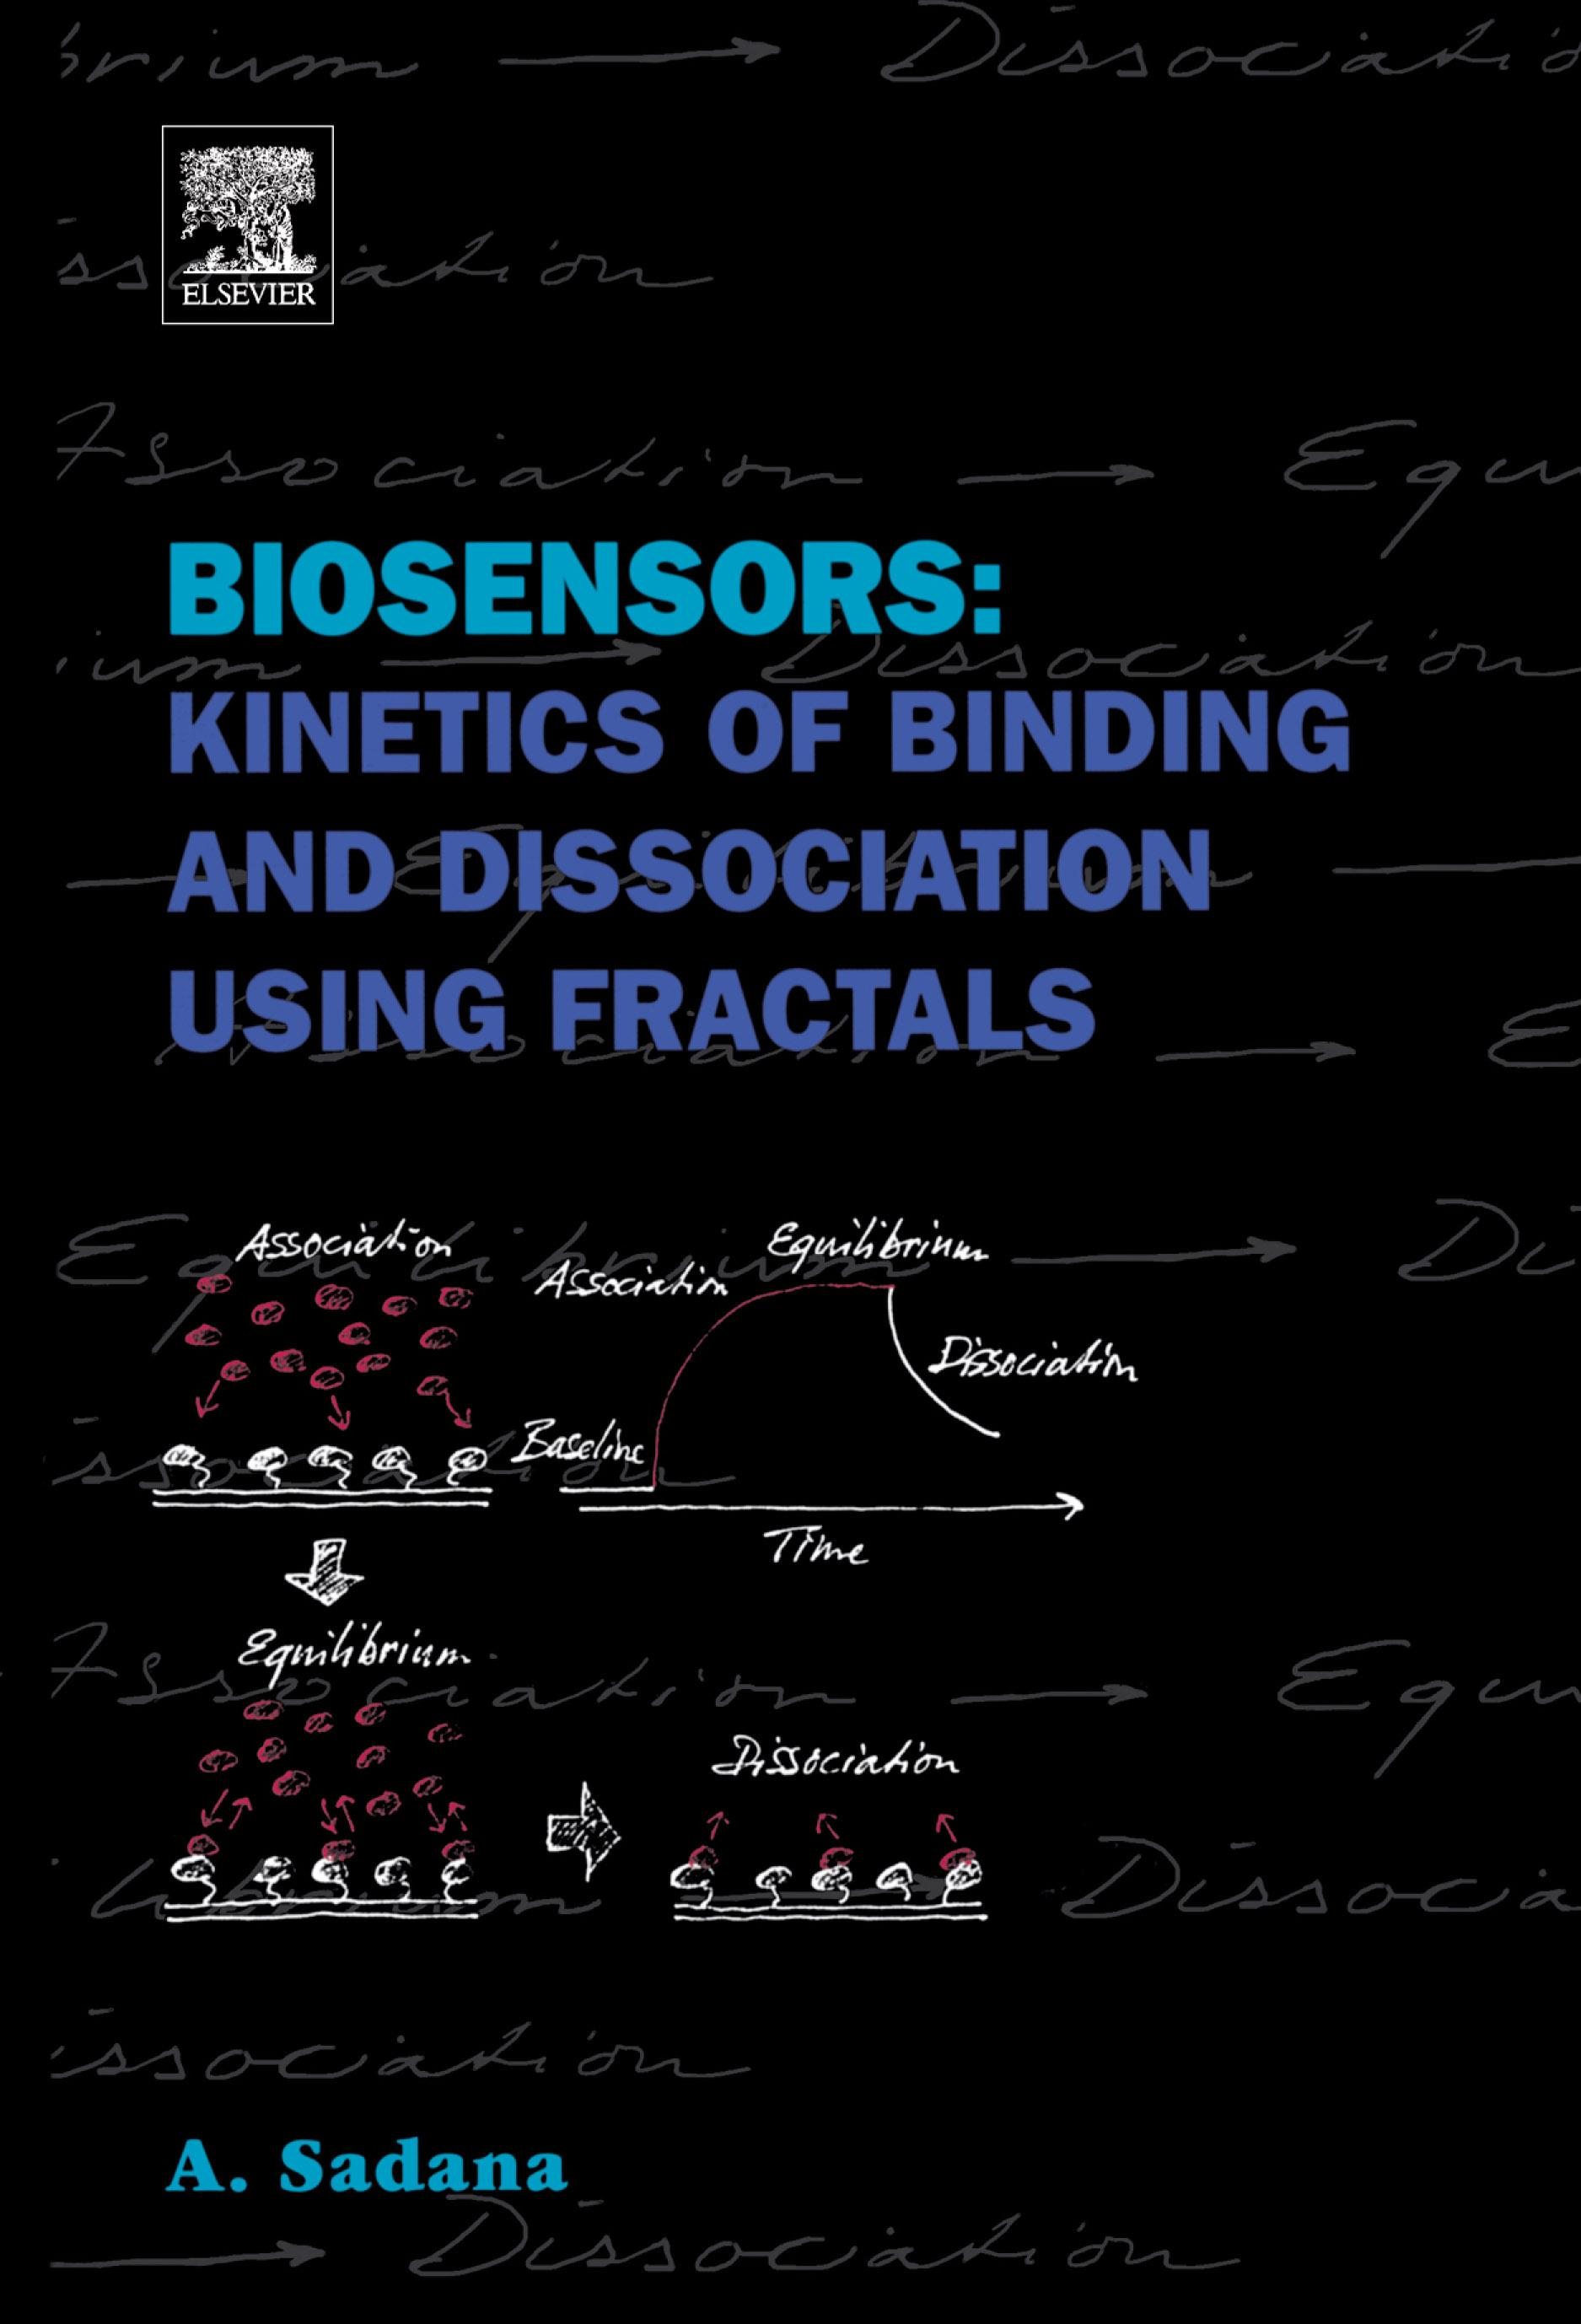 Biosensors: Kinetics of Binding and Dissociation Using Fractals: Kinetics of Binding and Dissociation Using Fractals